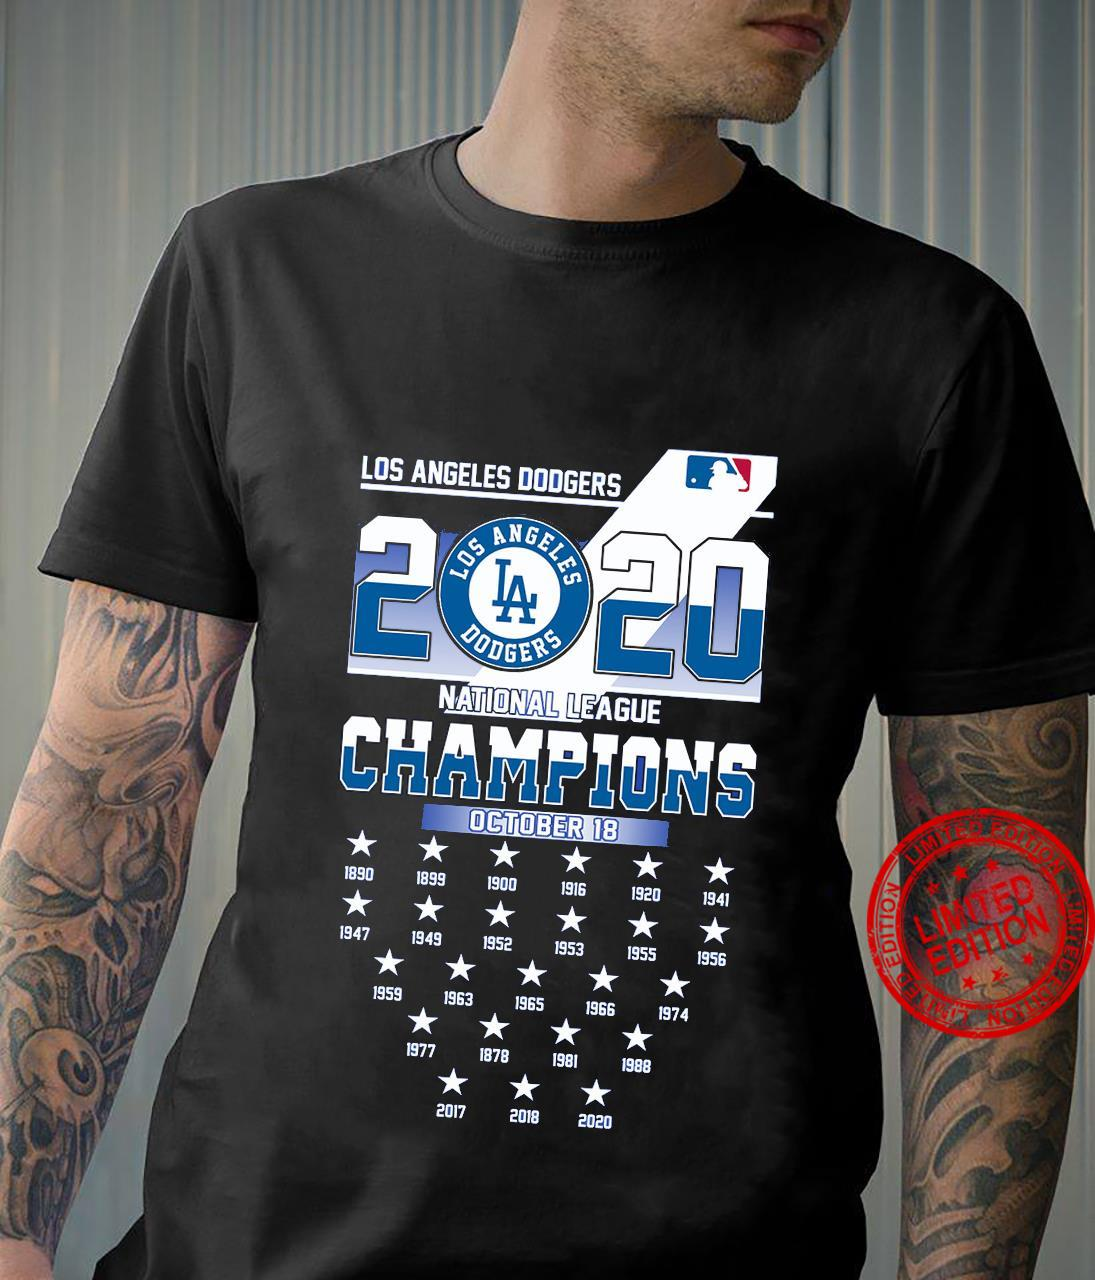 Los Angeles Dodgers 2020 National League Champions October 18 Shirt unisex